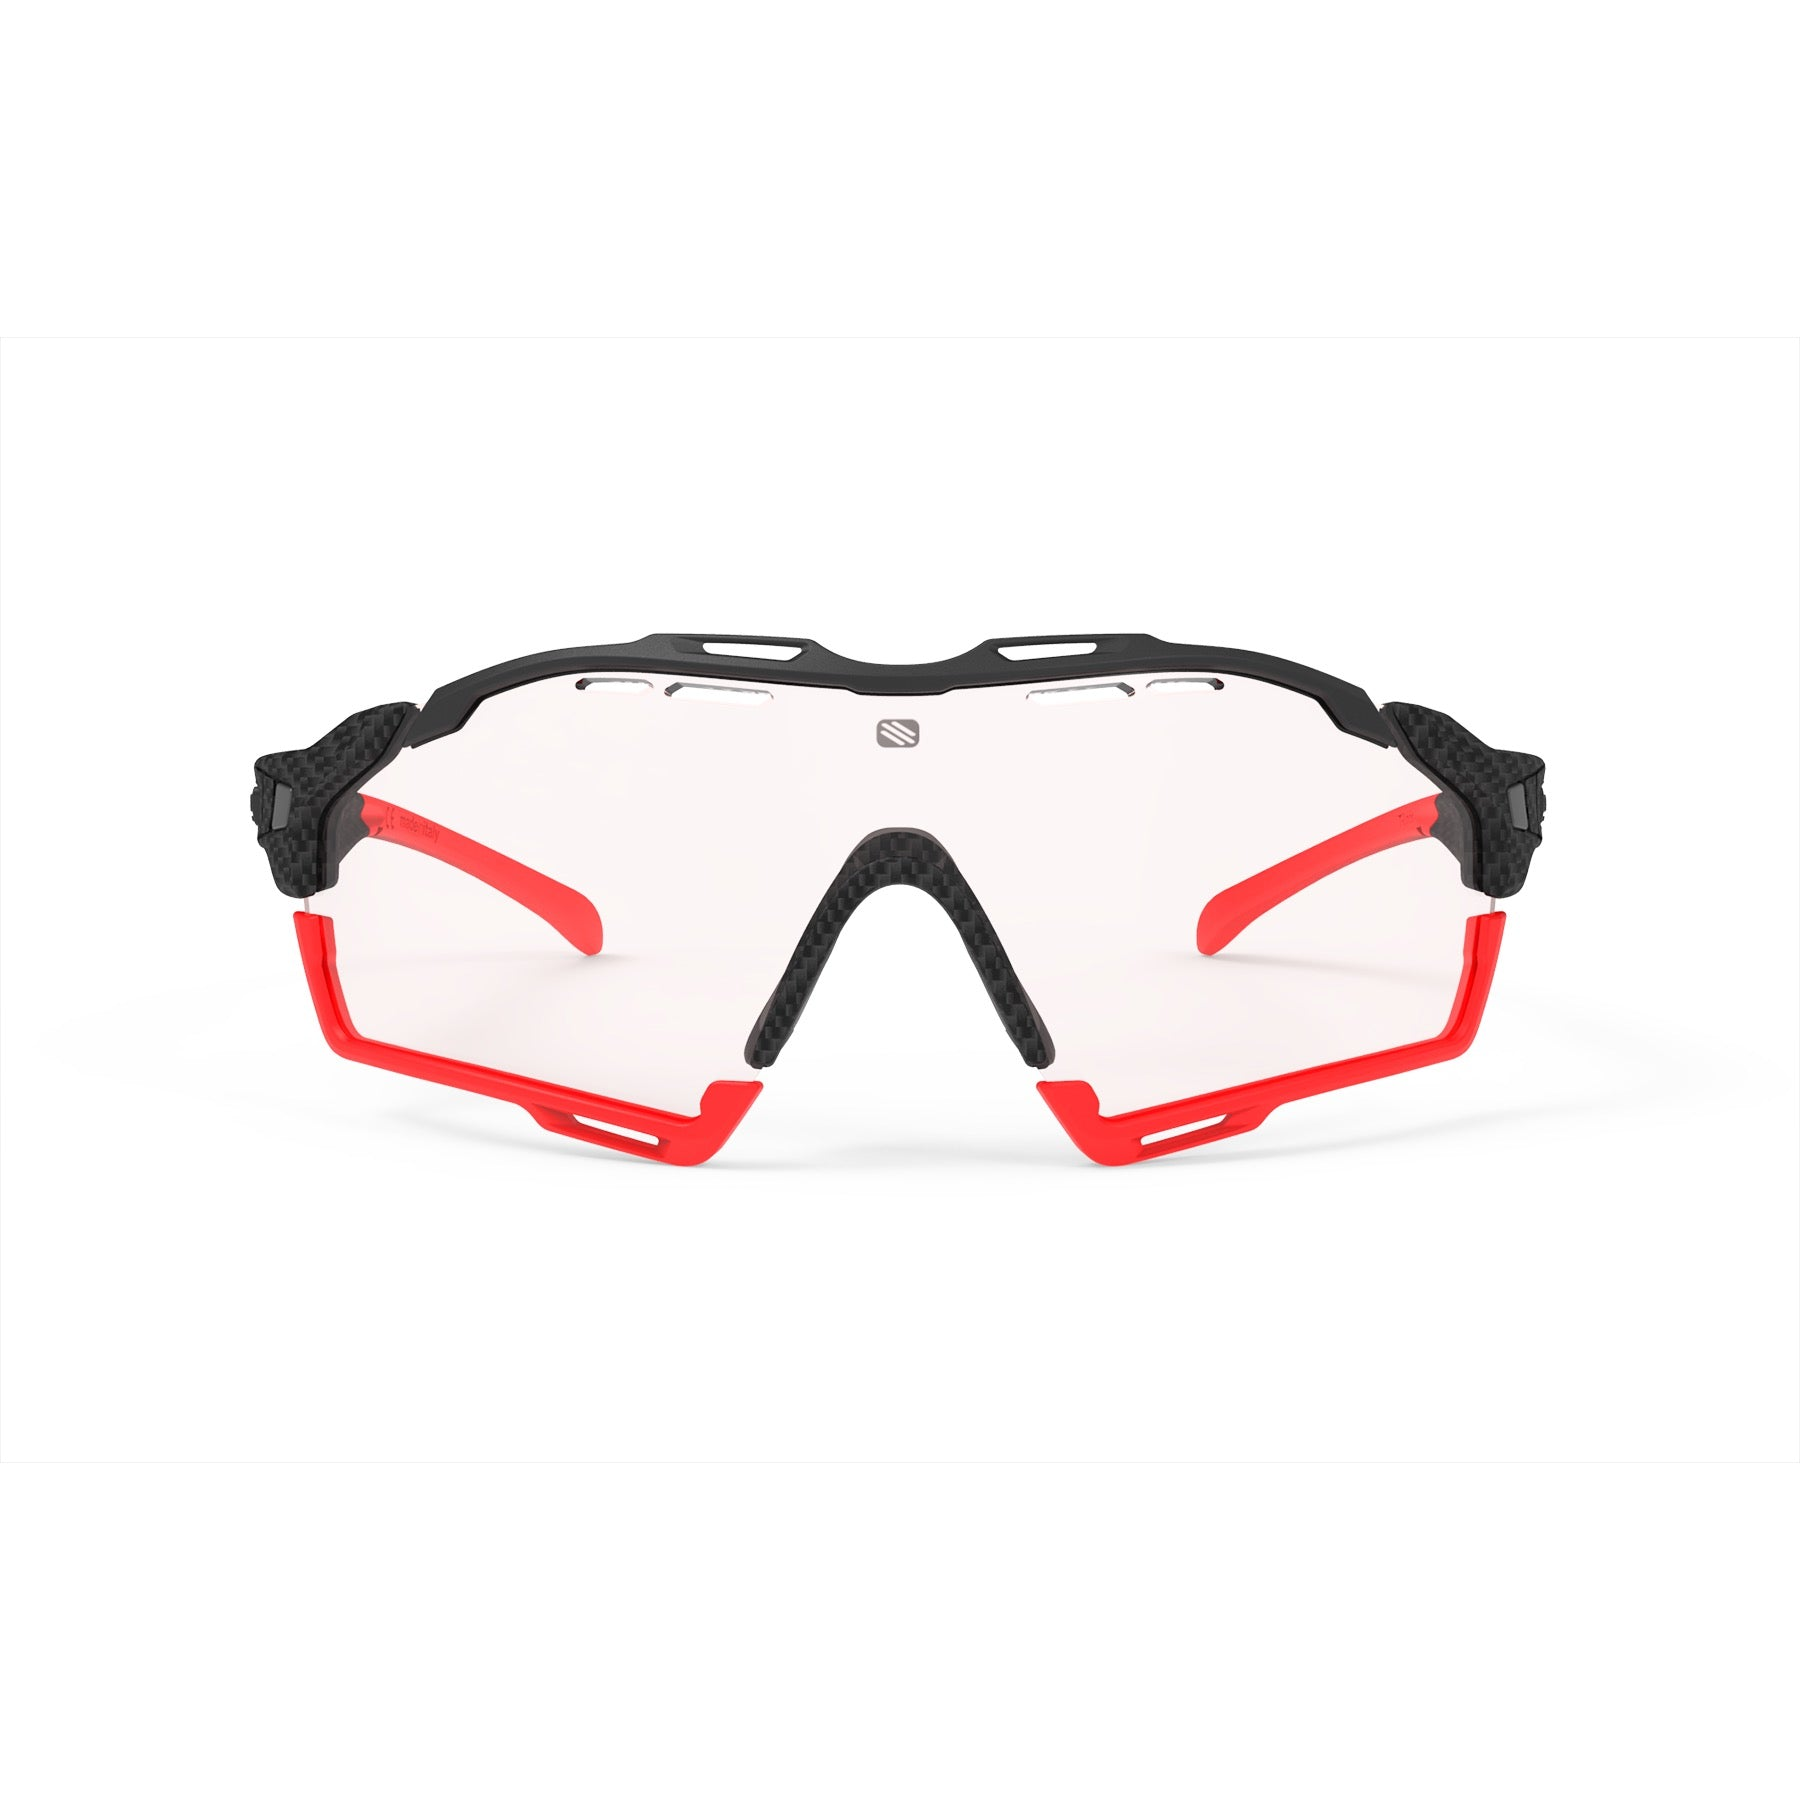 Rudy Project - Cutline - frame color: Carbonium - lens color: ImpactX-2 Photochromic Clear to Red - Bumper Color: Red - photo angle: Front View Variant Hover Image